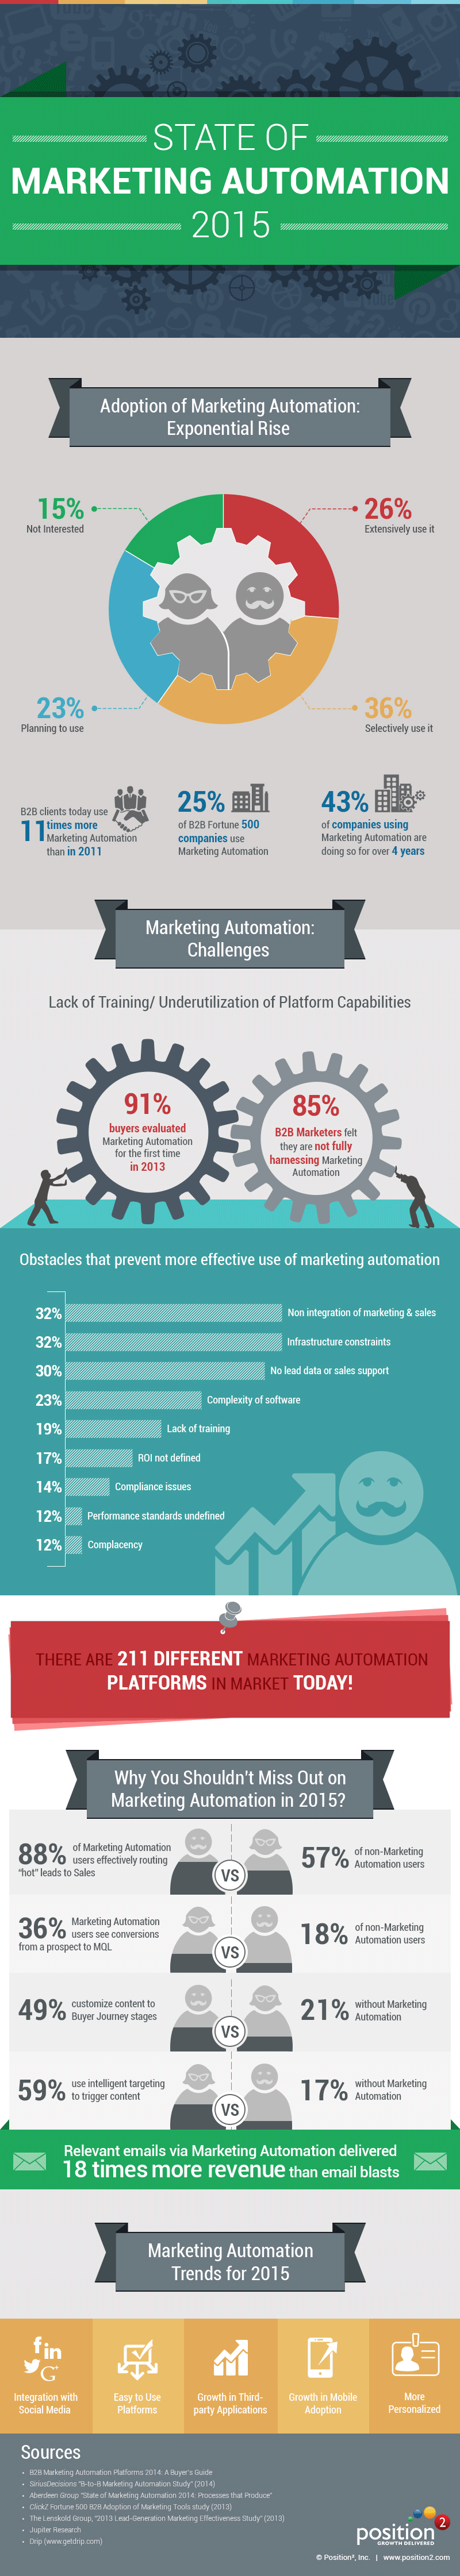 State of Marketing Automation 2015 #infographic